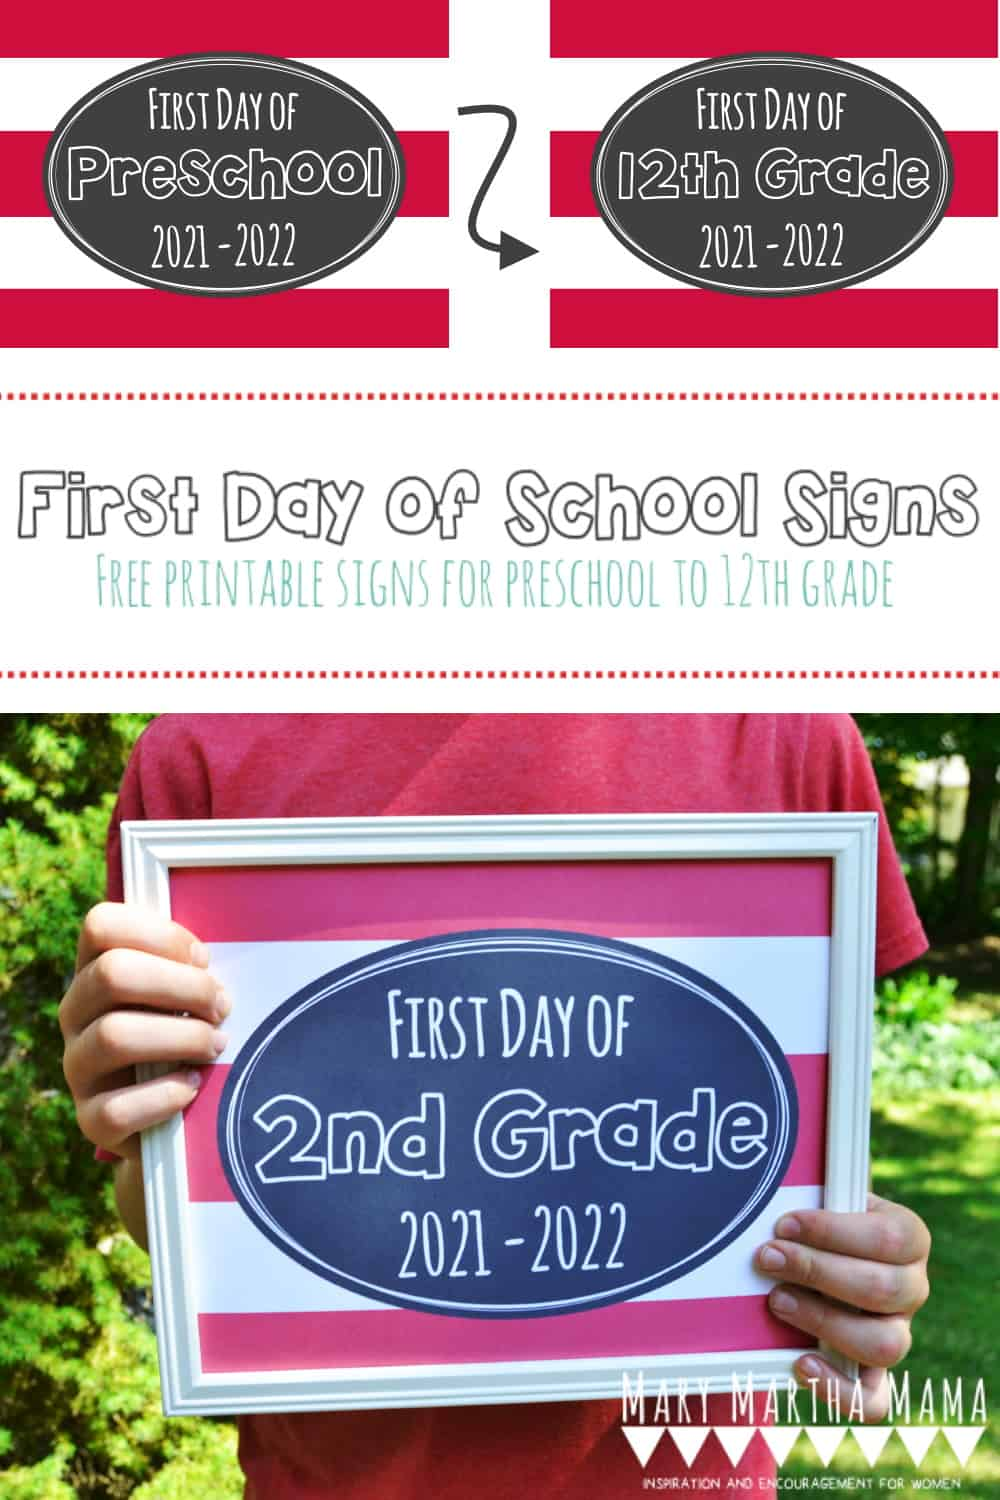 Grab these free printable first day of school signs for the 2021- 2022 school year & get some cute pictures of your kiddos on the first day.